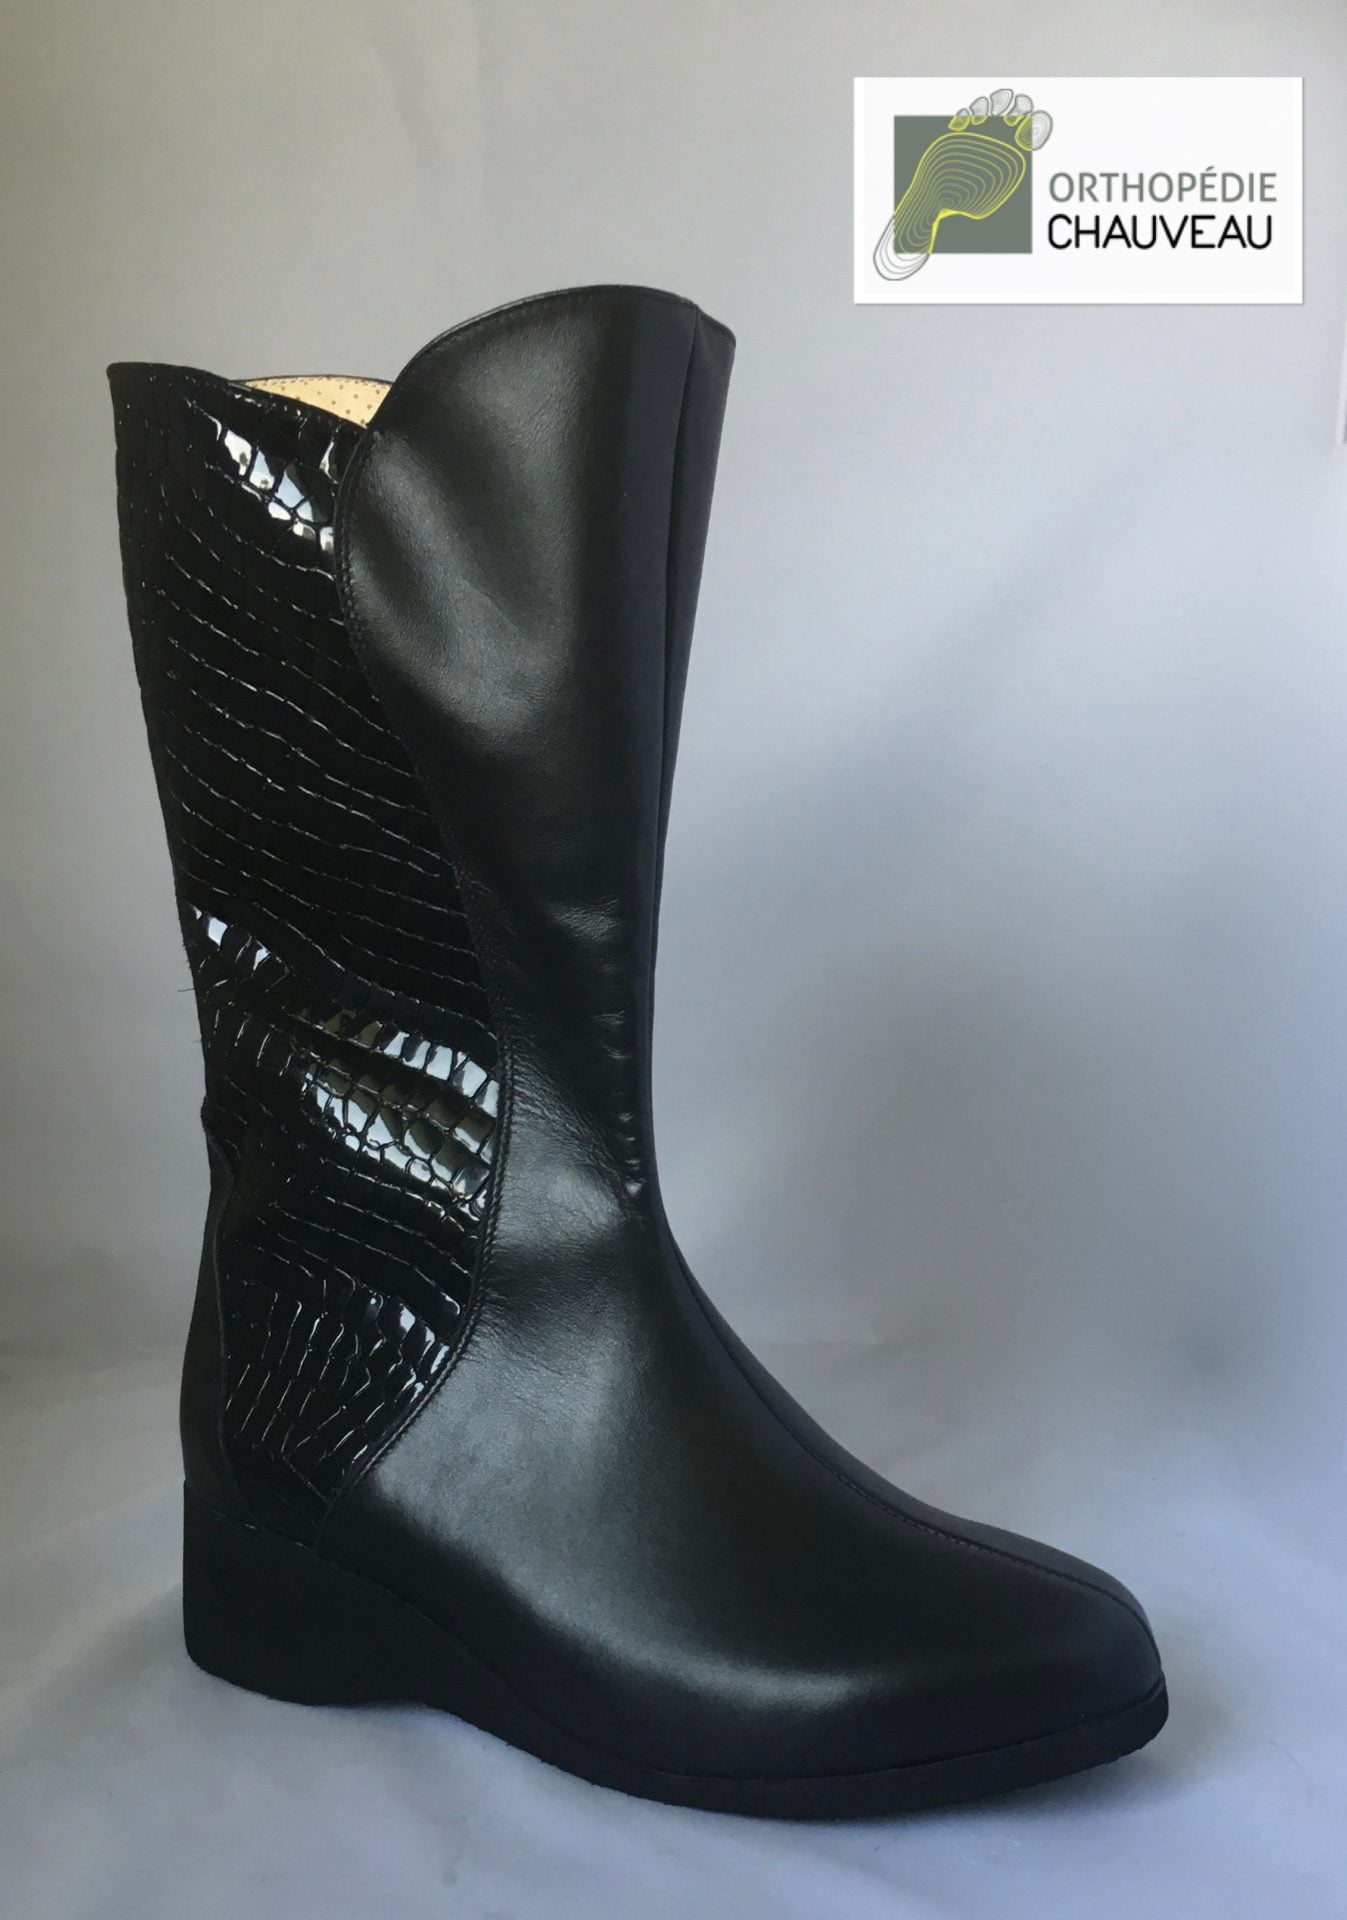 chaussures orthopediques Rennes st malo bottes